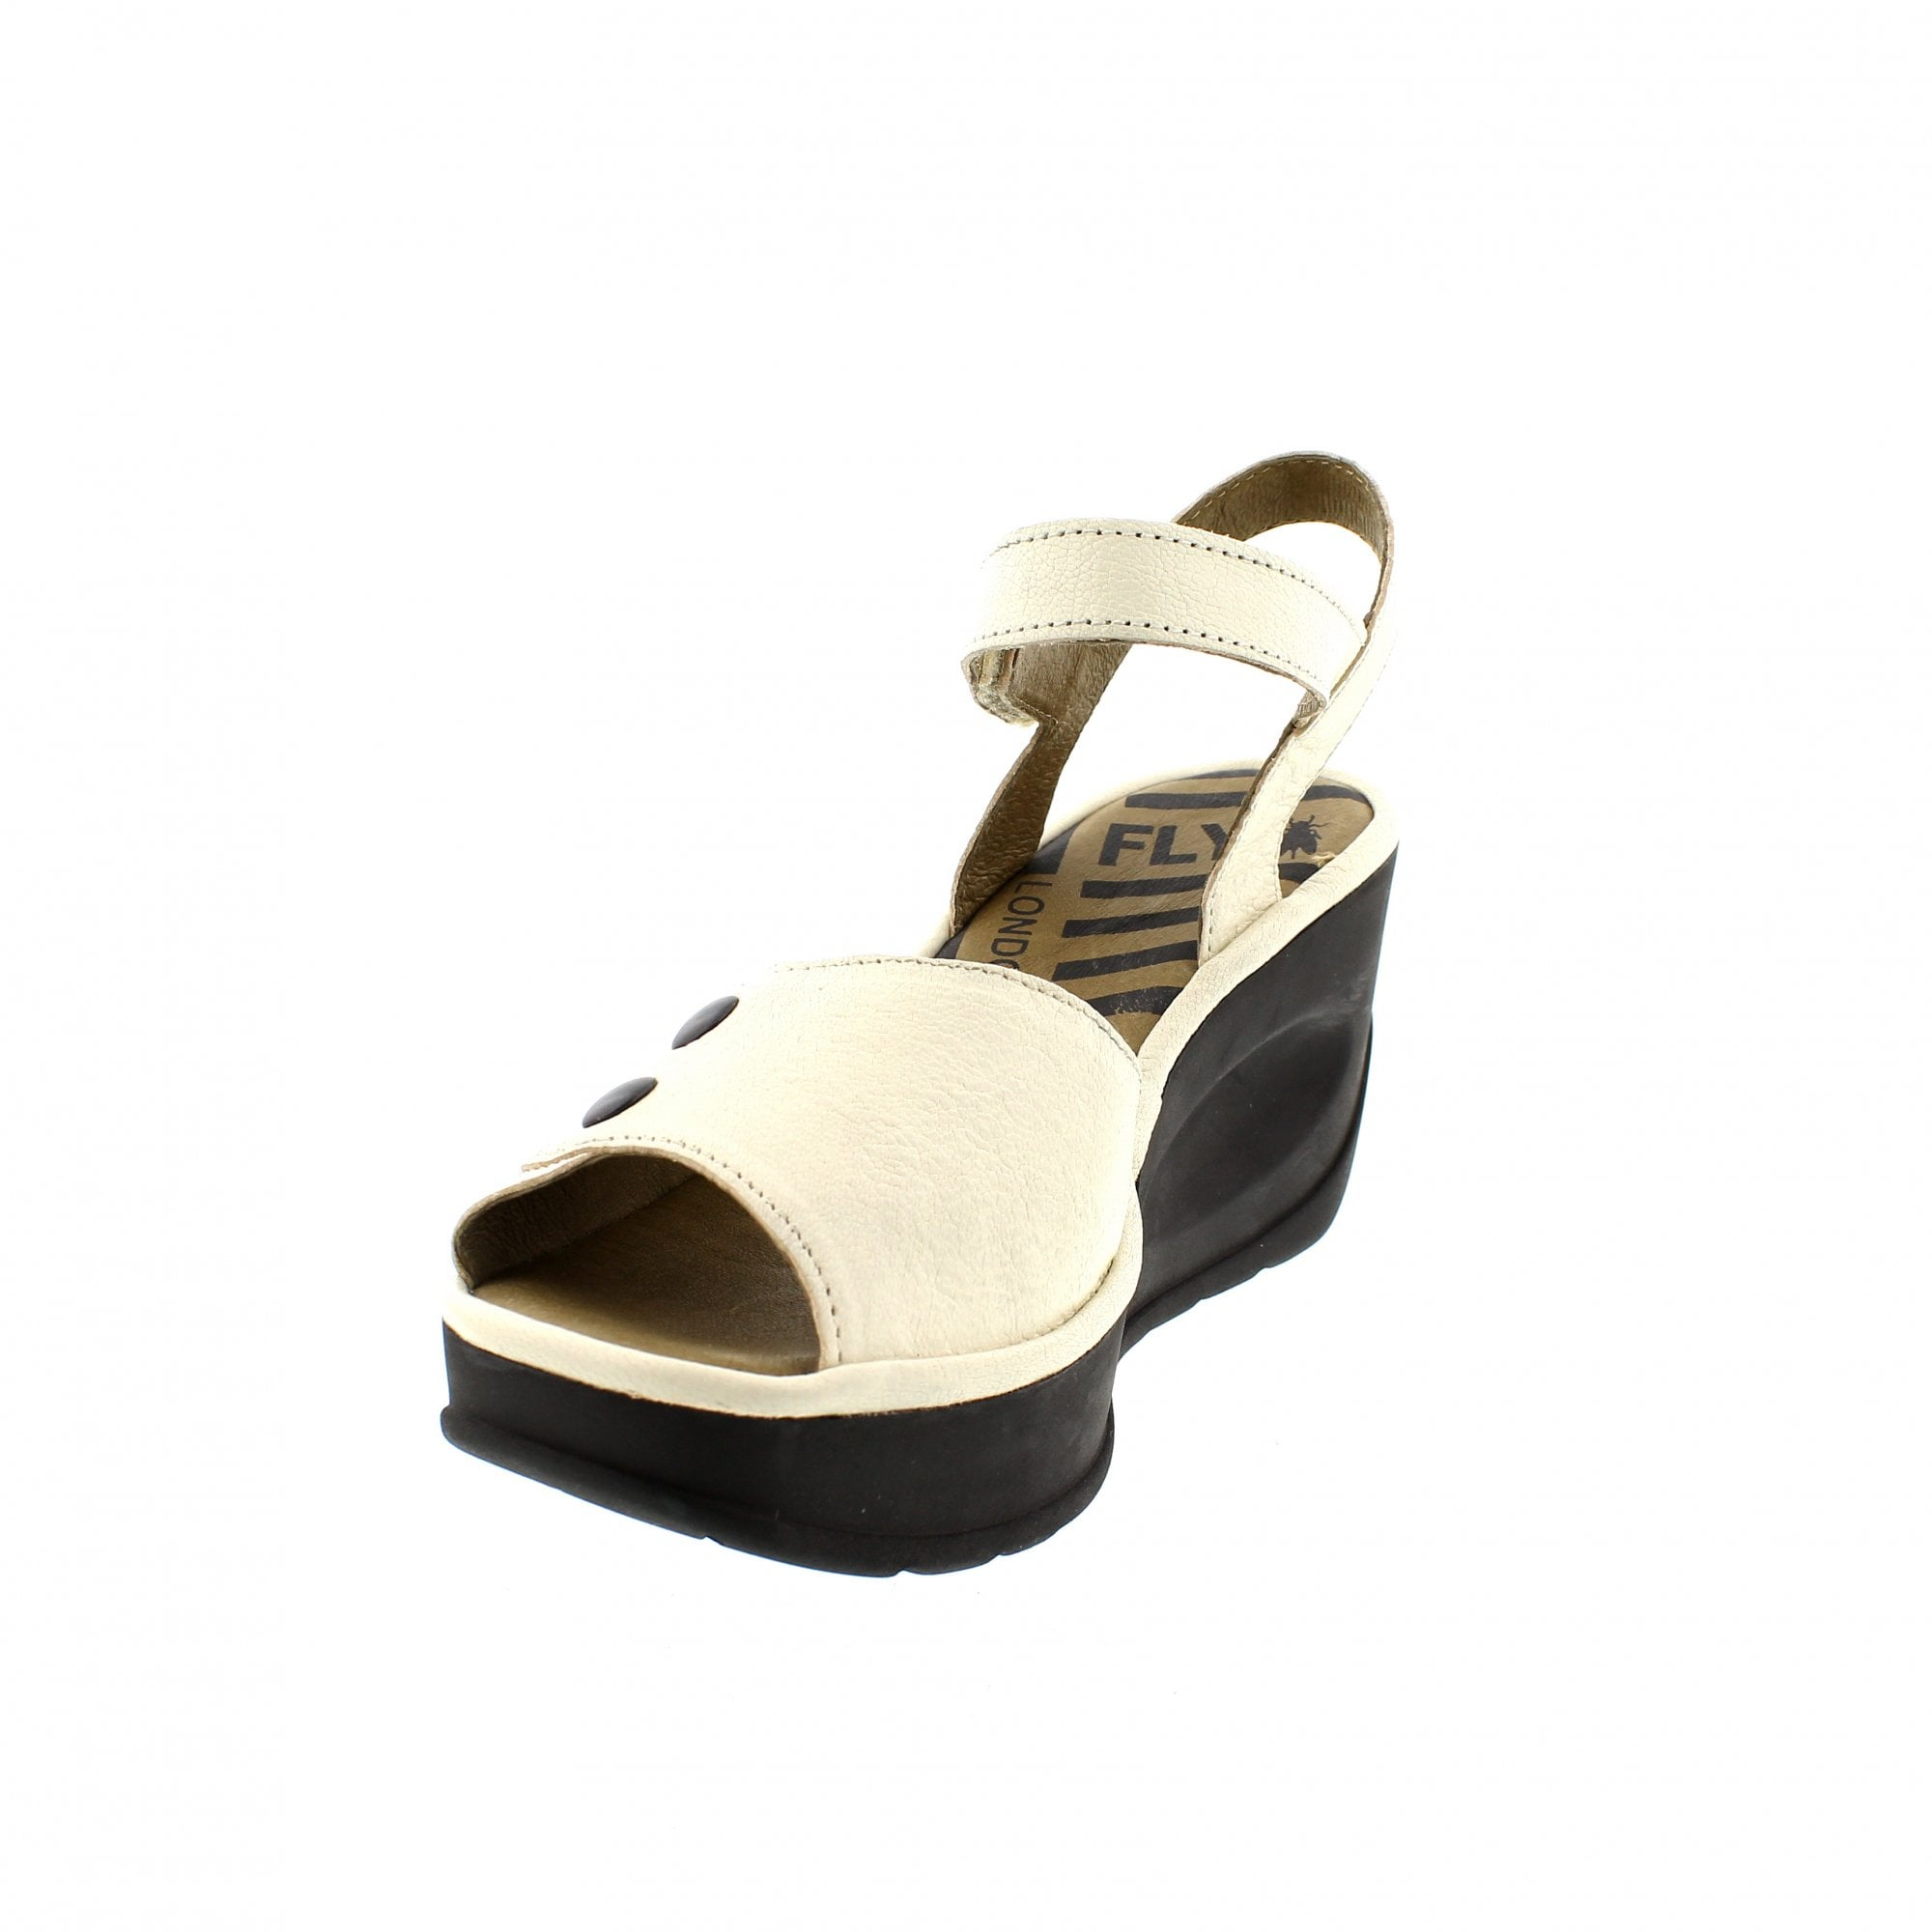 e00e3508 Fly London Jemi Wedge Sandals Off White Leather | Rogerson Shoes